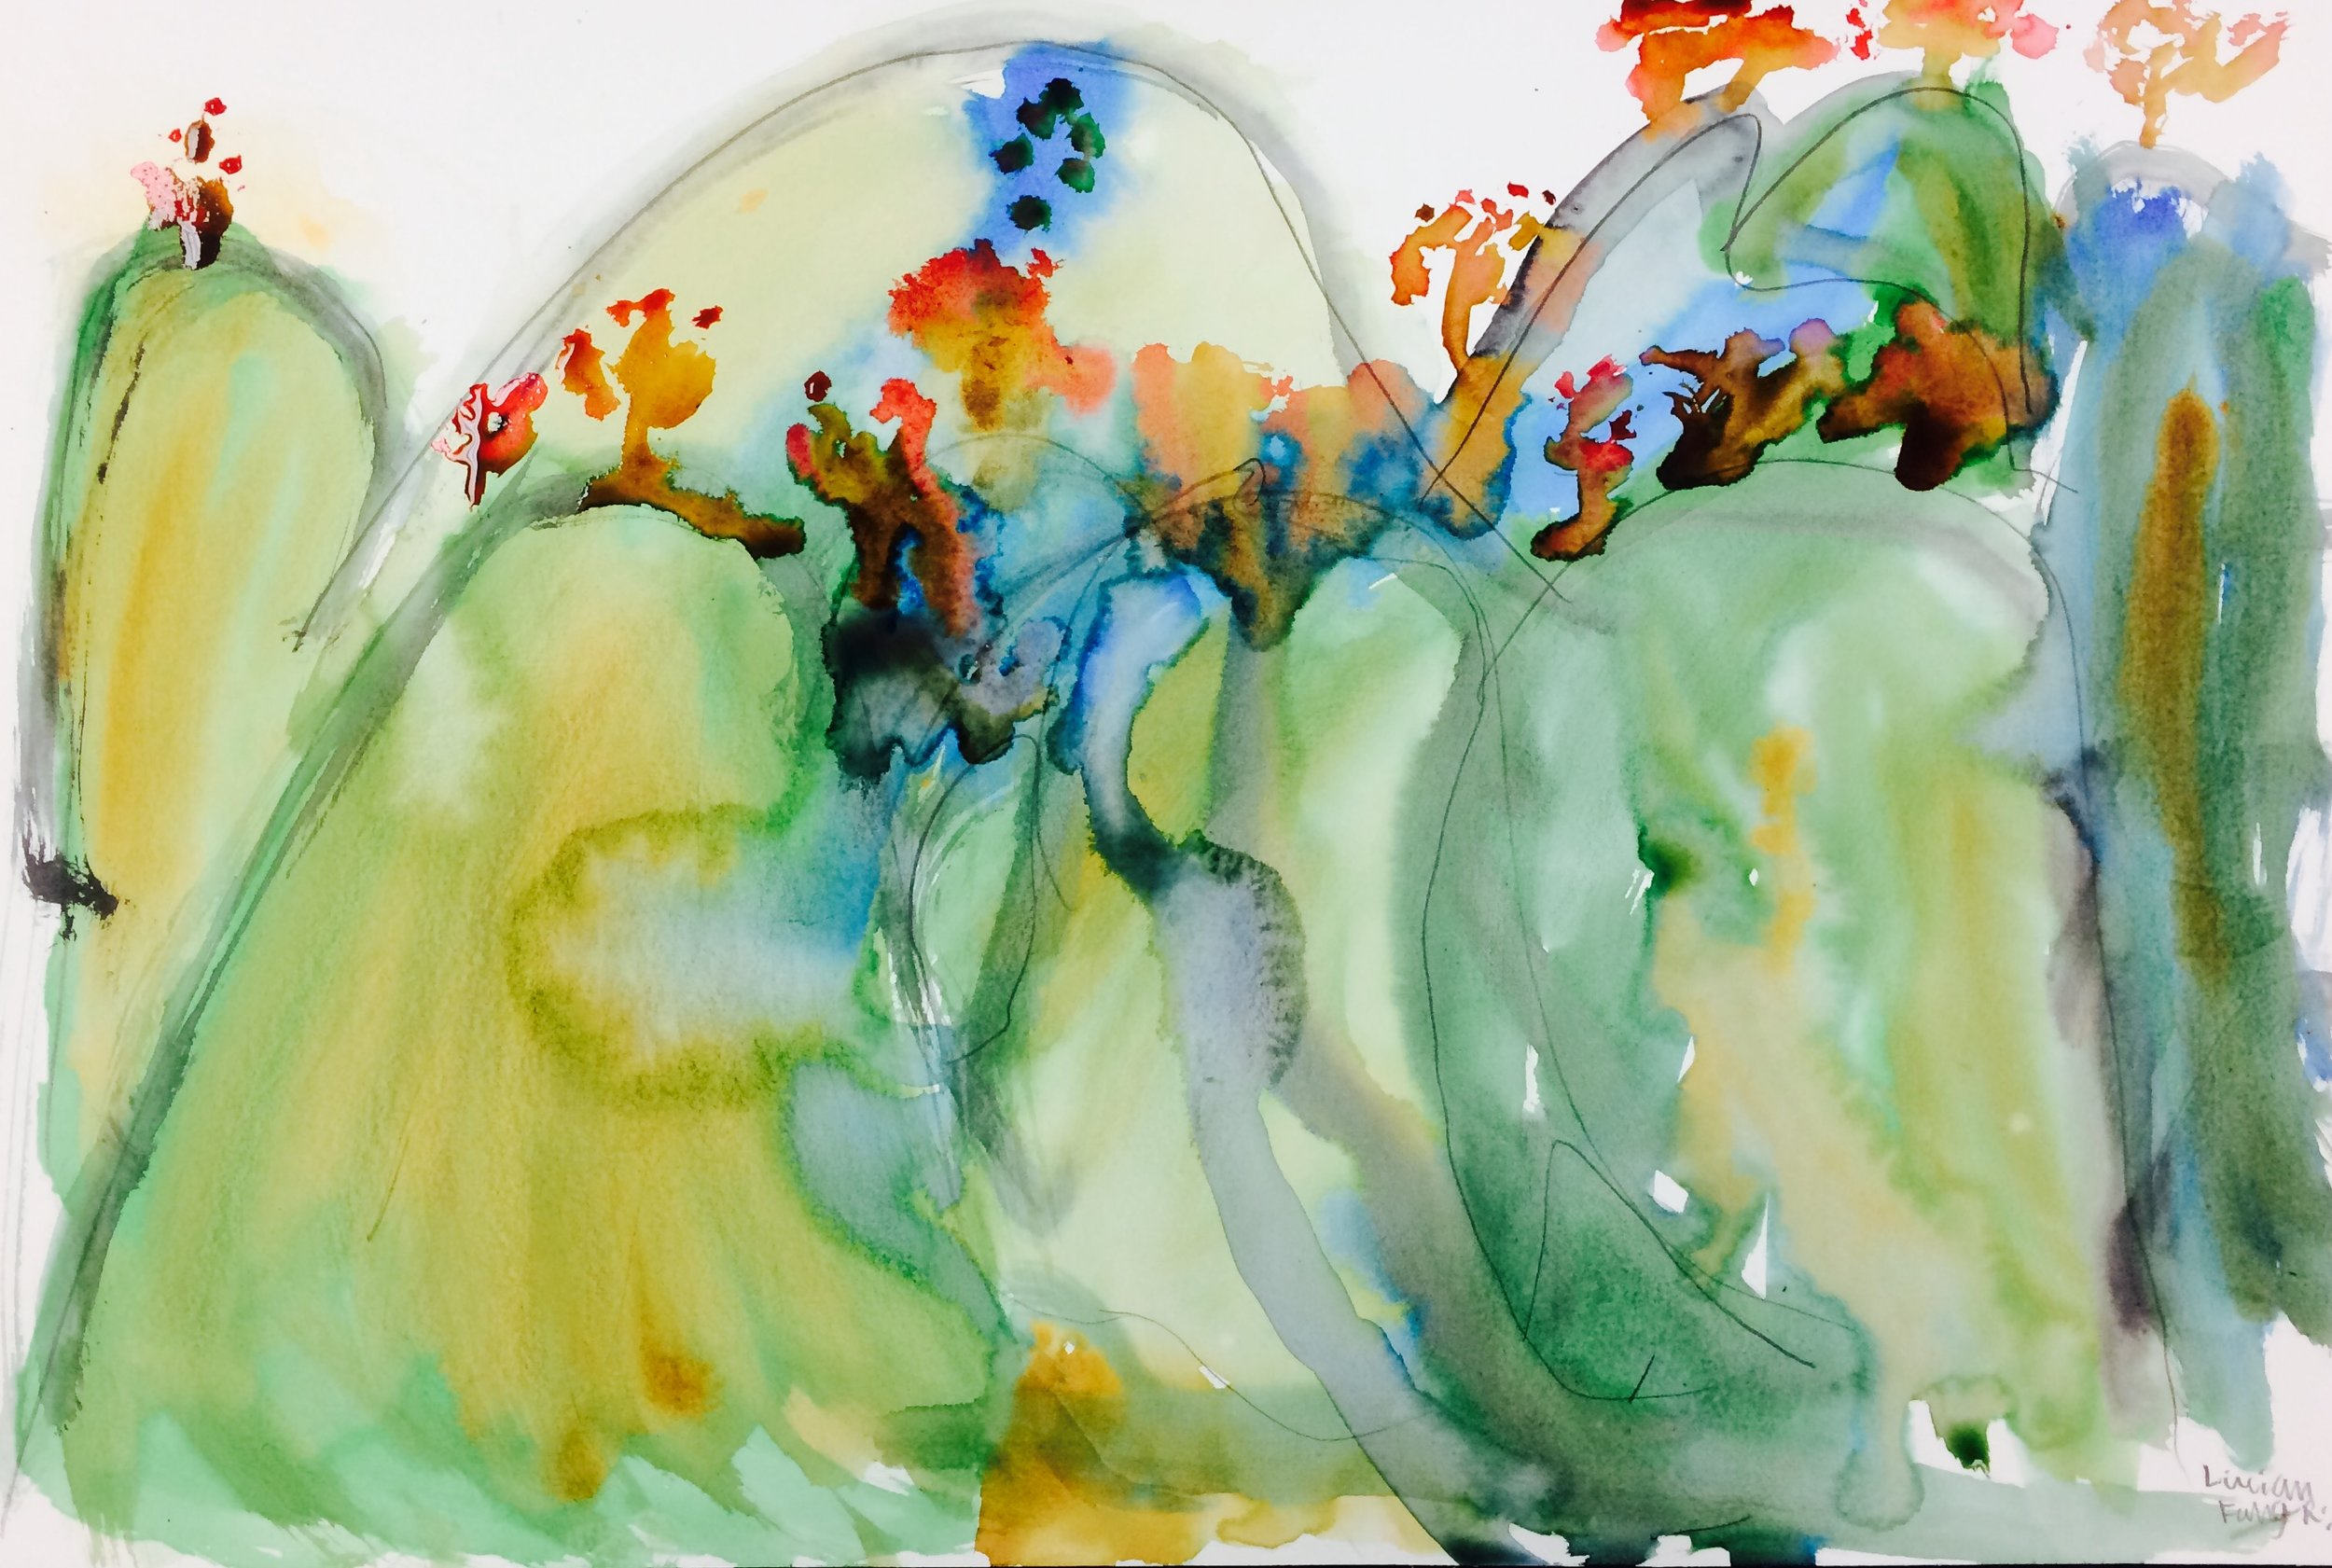 Watercolor mountains by Emily, 8 years old